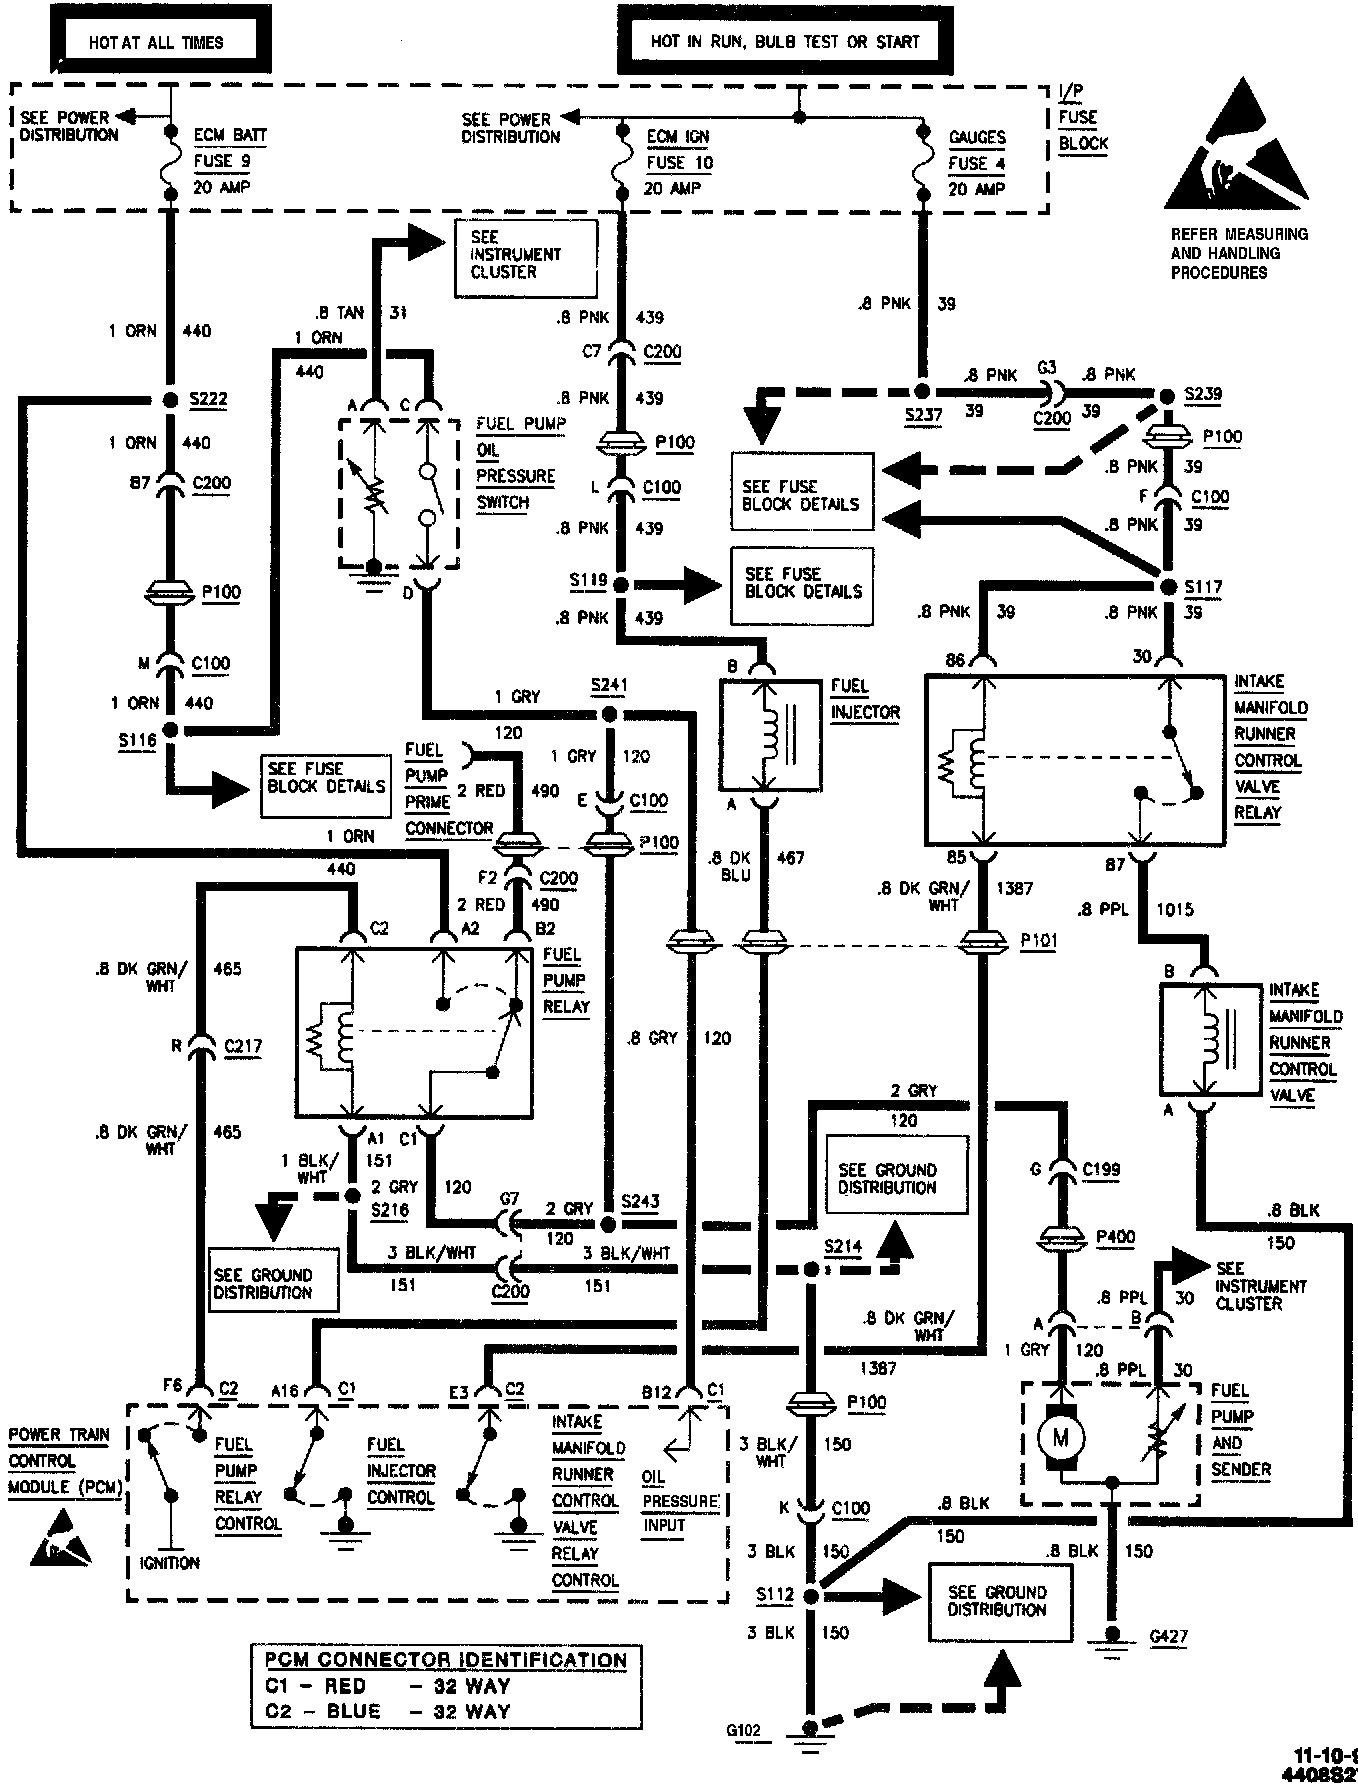 New Wiring Harness Schematic Diagram Wiringdiagram Diagramming Diagramm Visuals Visualisation Graphical Check More At H Chevy S10 Diagram Diagram Design